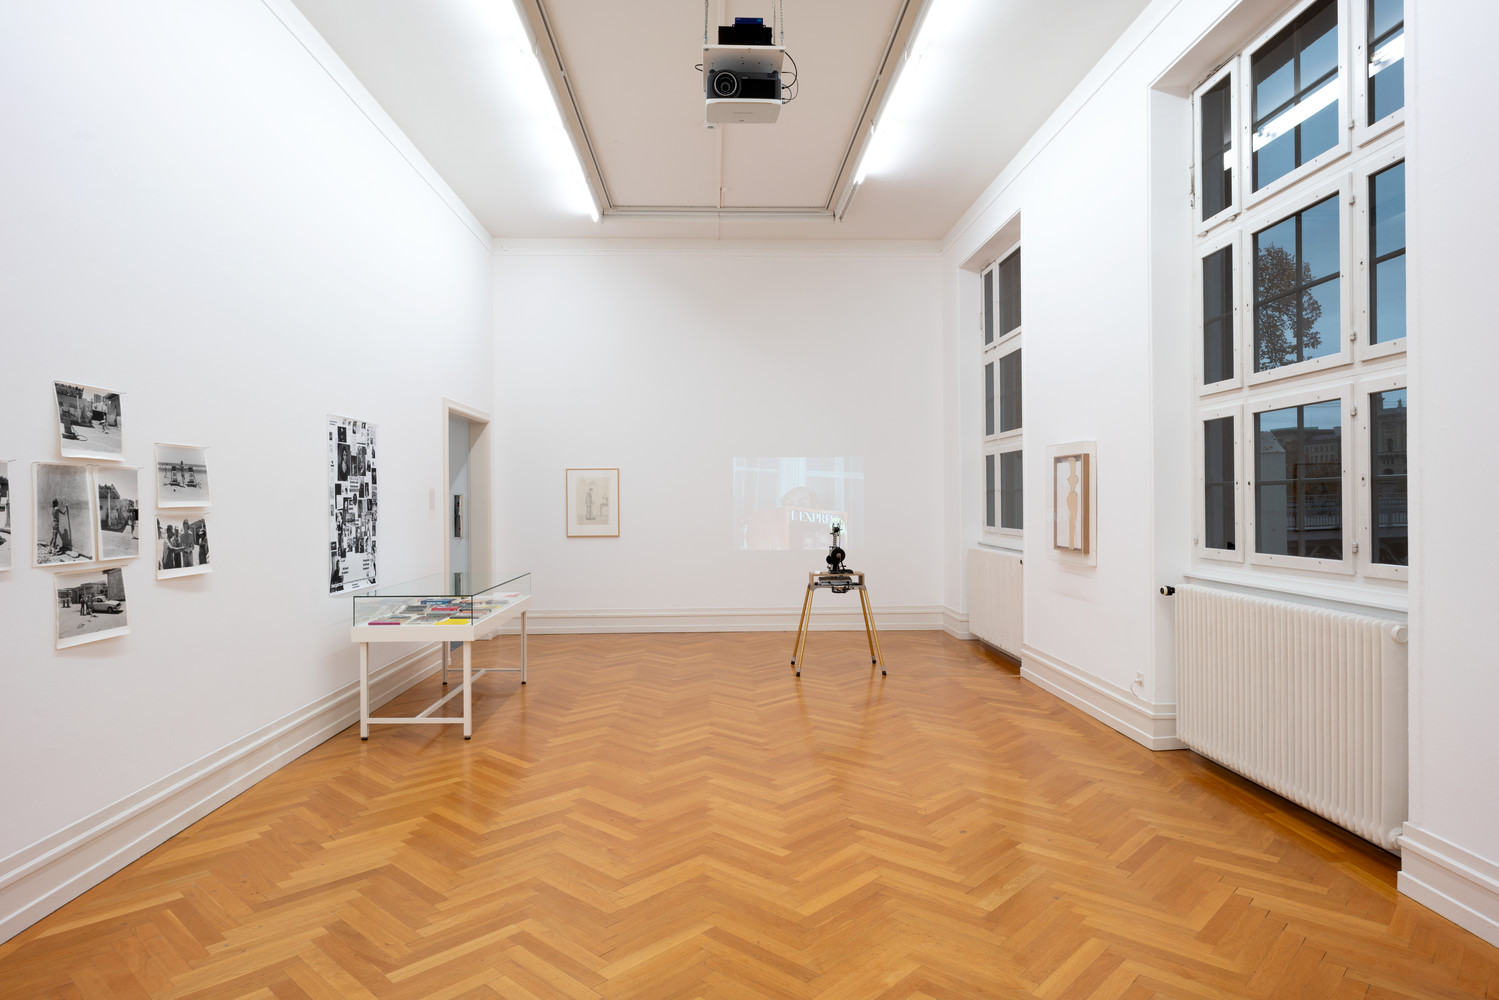 Exhibition view, No Dandy, No Fun, Kunsthalle Bern, 2020.